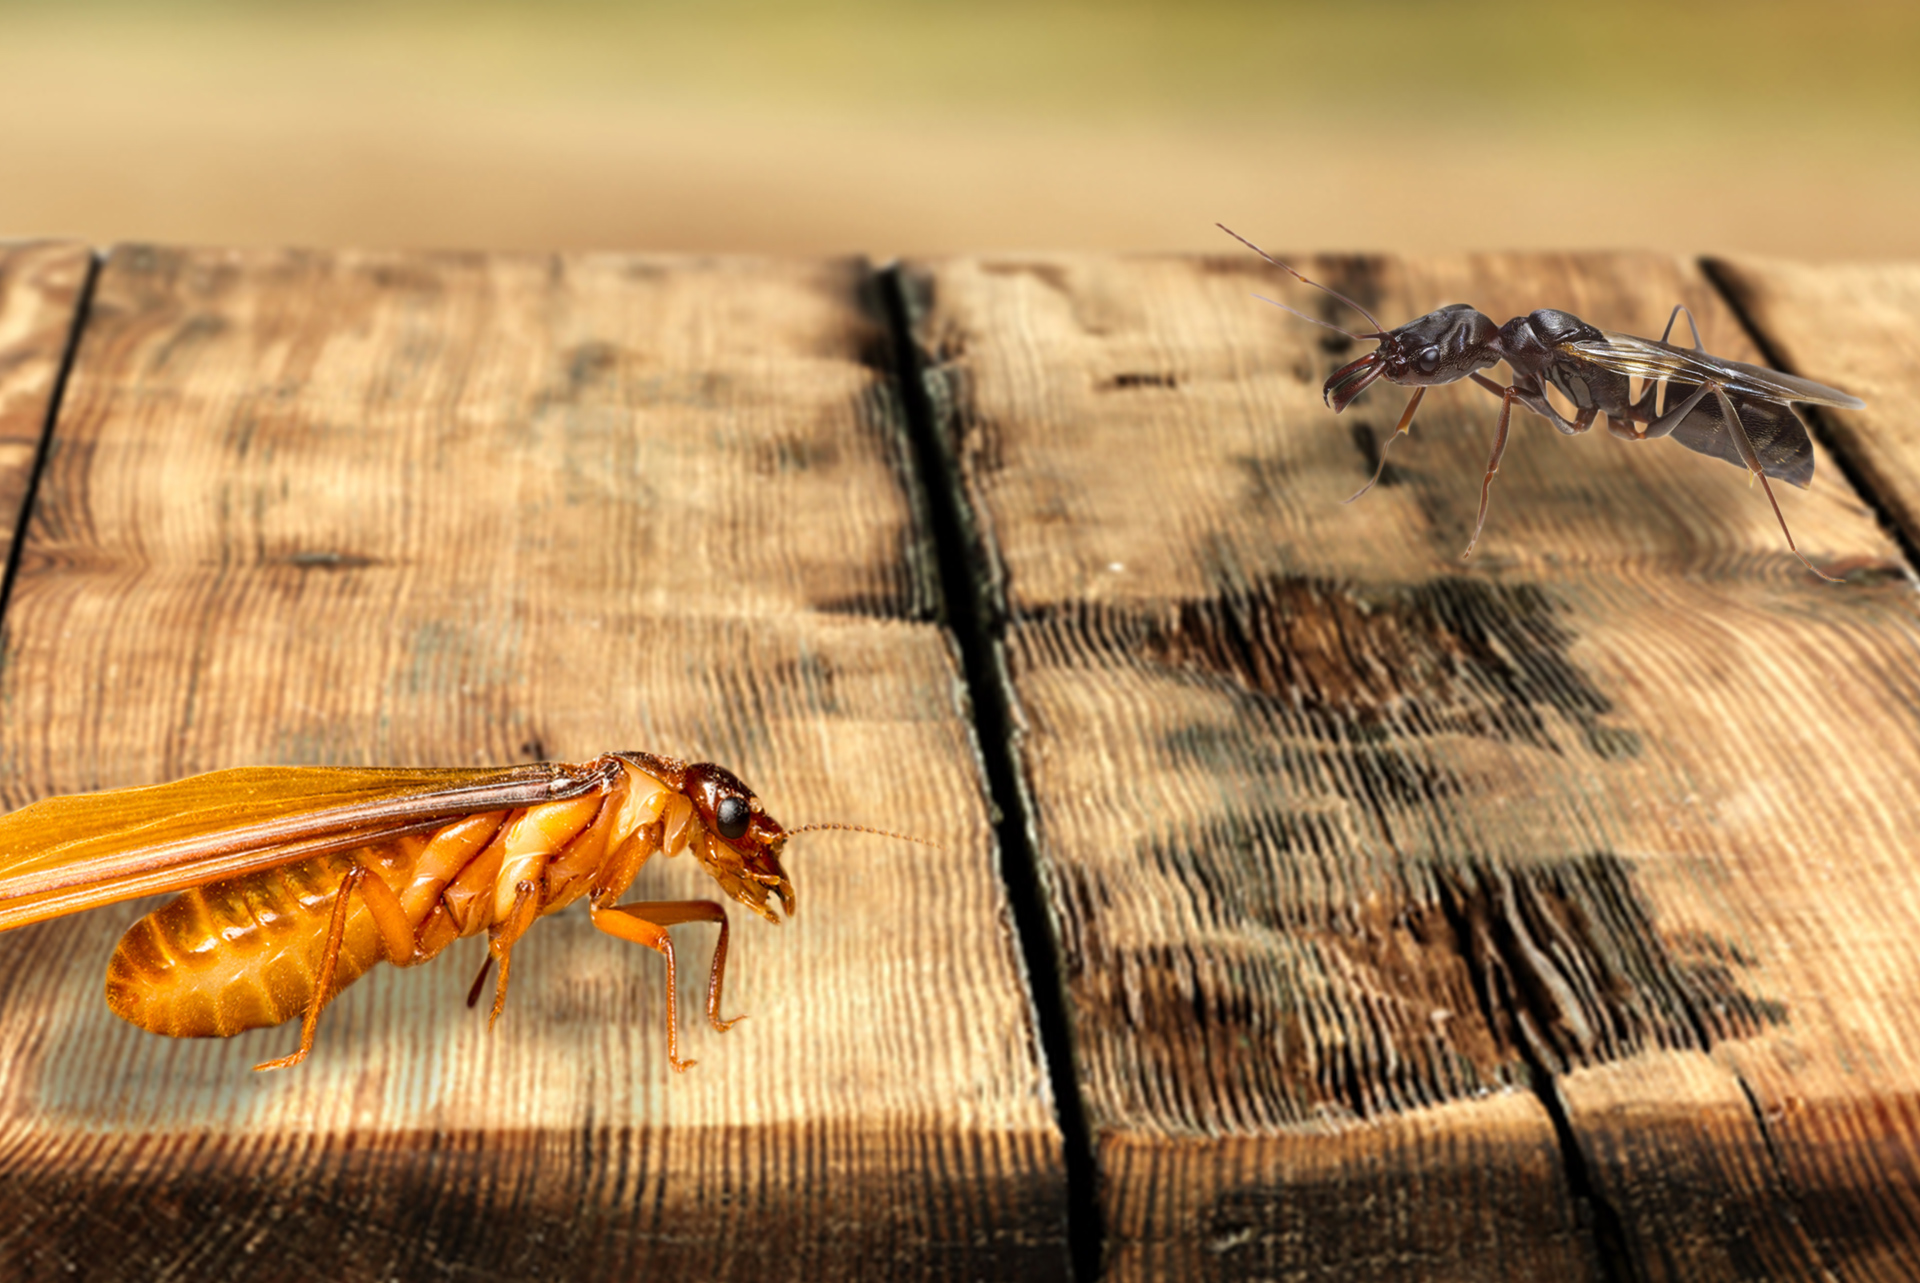 not-your-usual-suspects-termites-vs-flying-ants